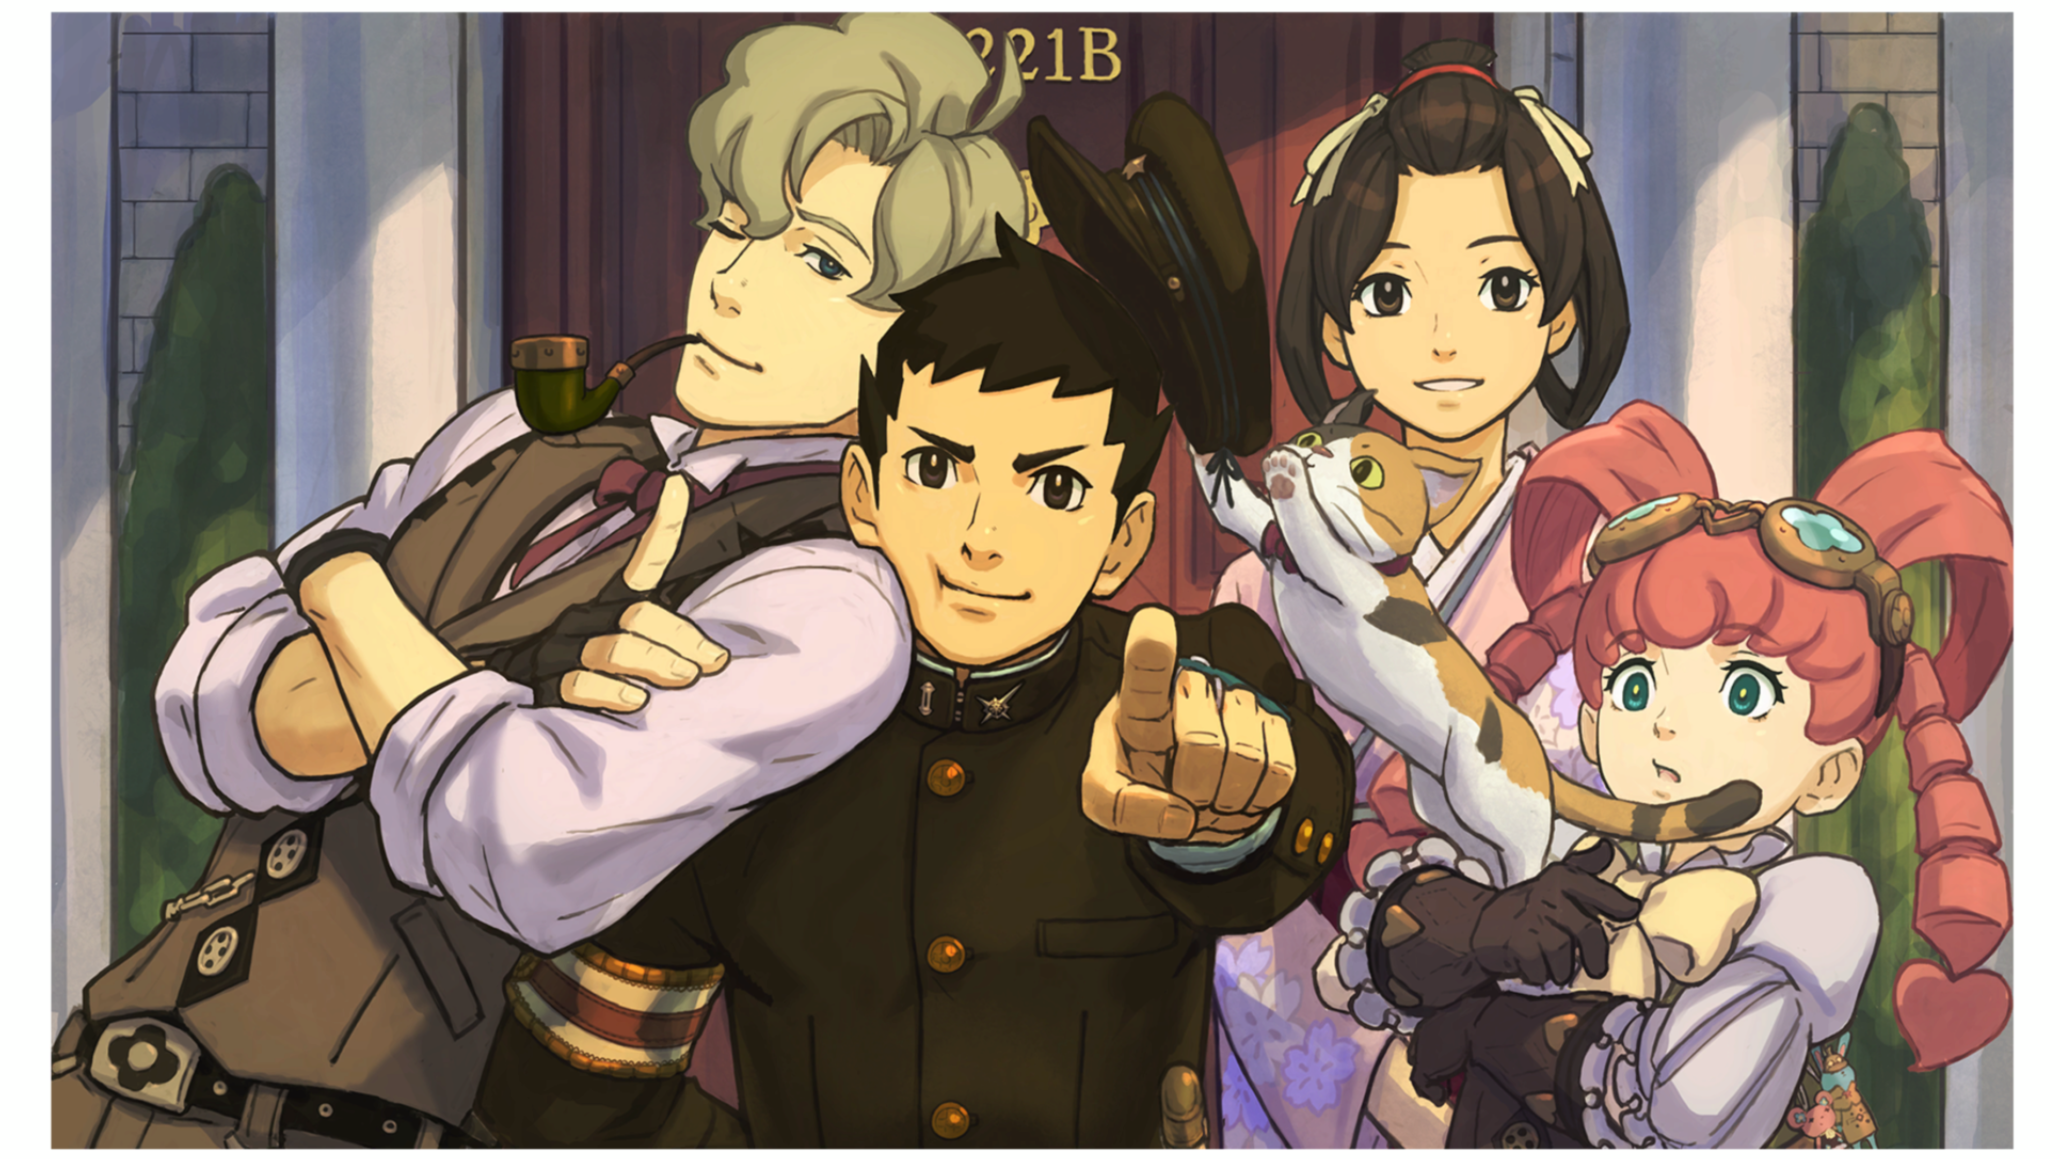 great-ace-attorney-221b-baker